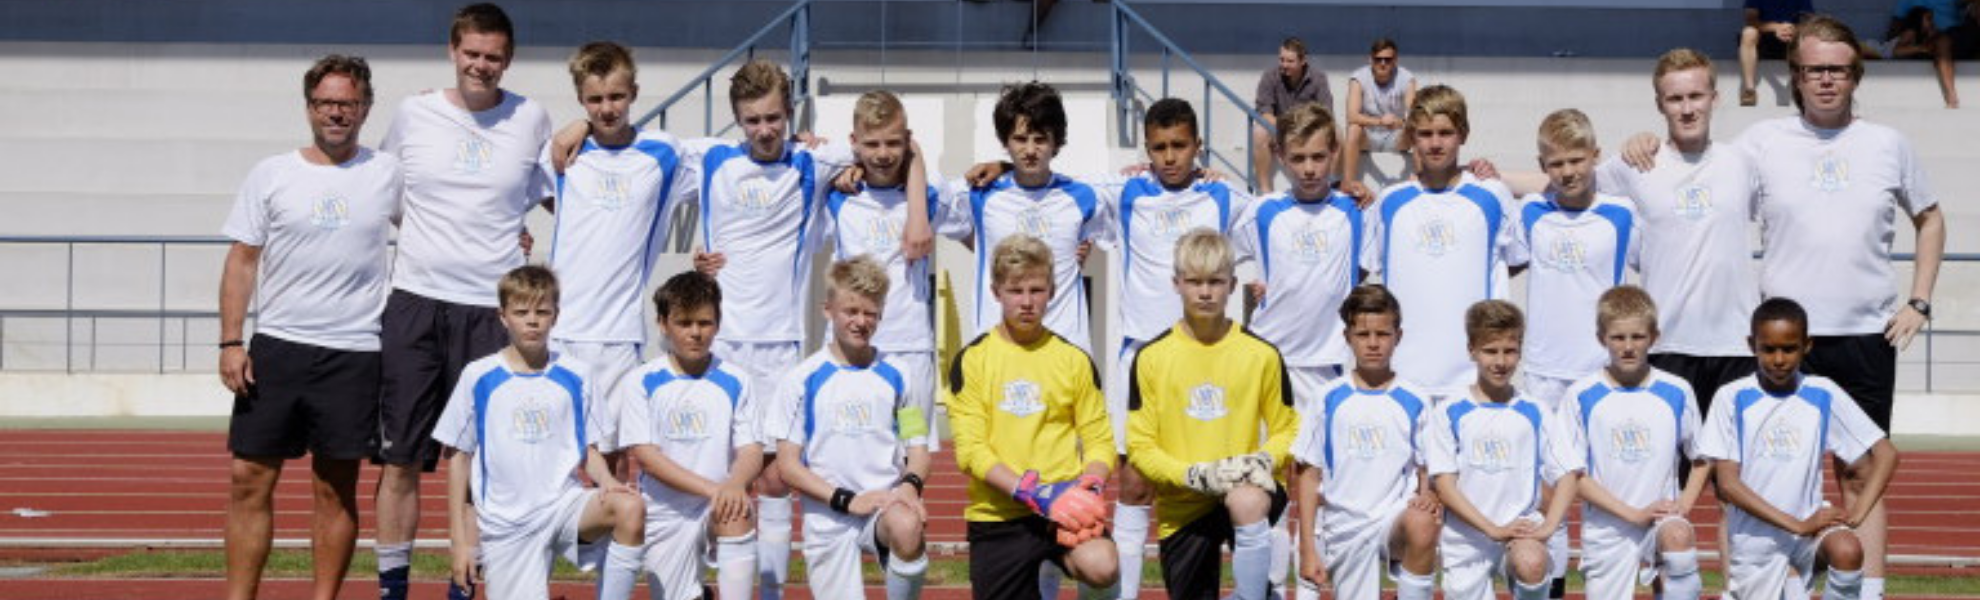 NF Elite Selection U13 participated in Ibercup Estoril in 2015. Five players in the picture are today on national teams and two on professional contracts in England and Germany.